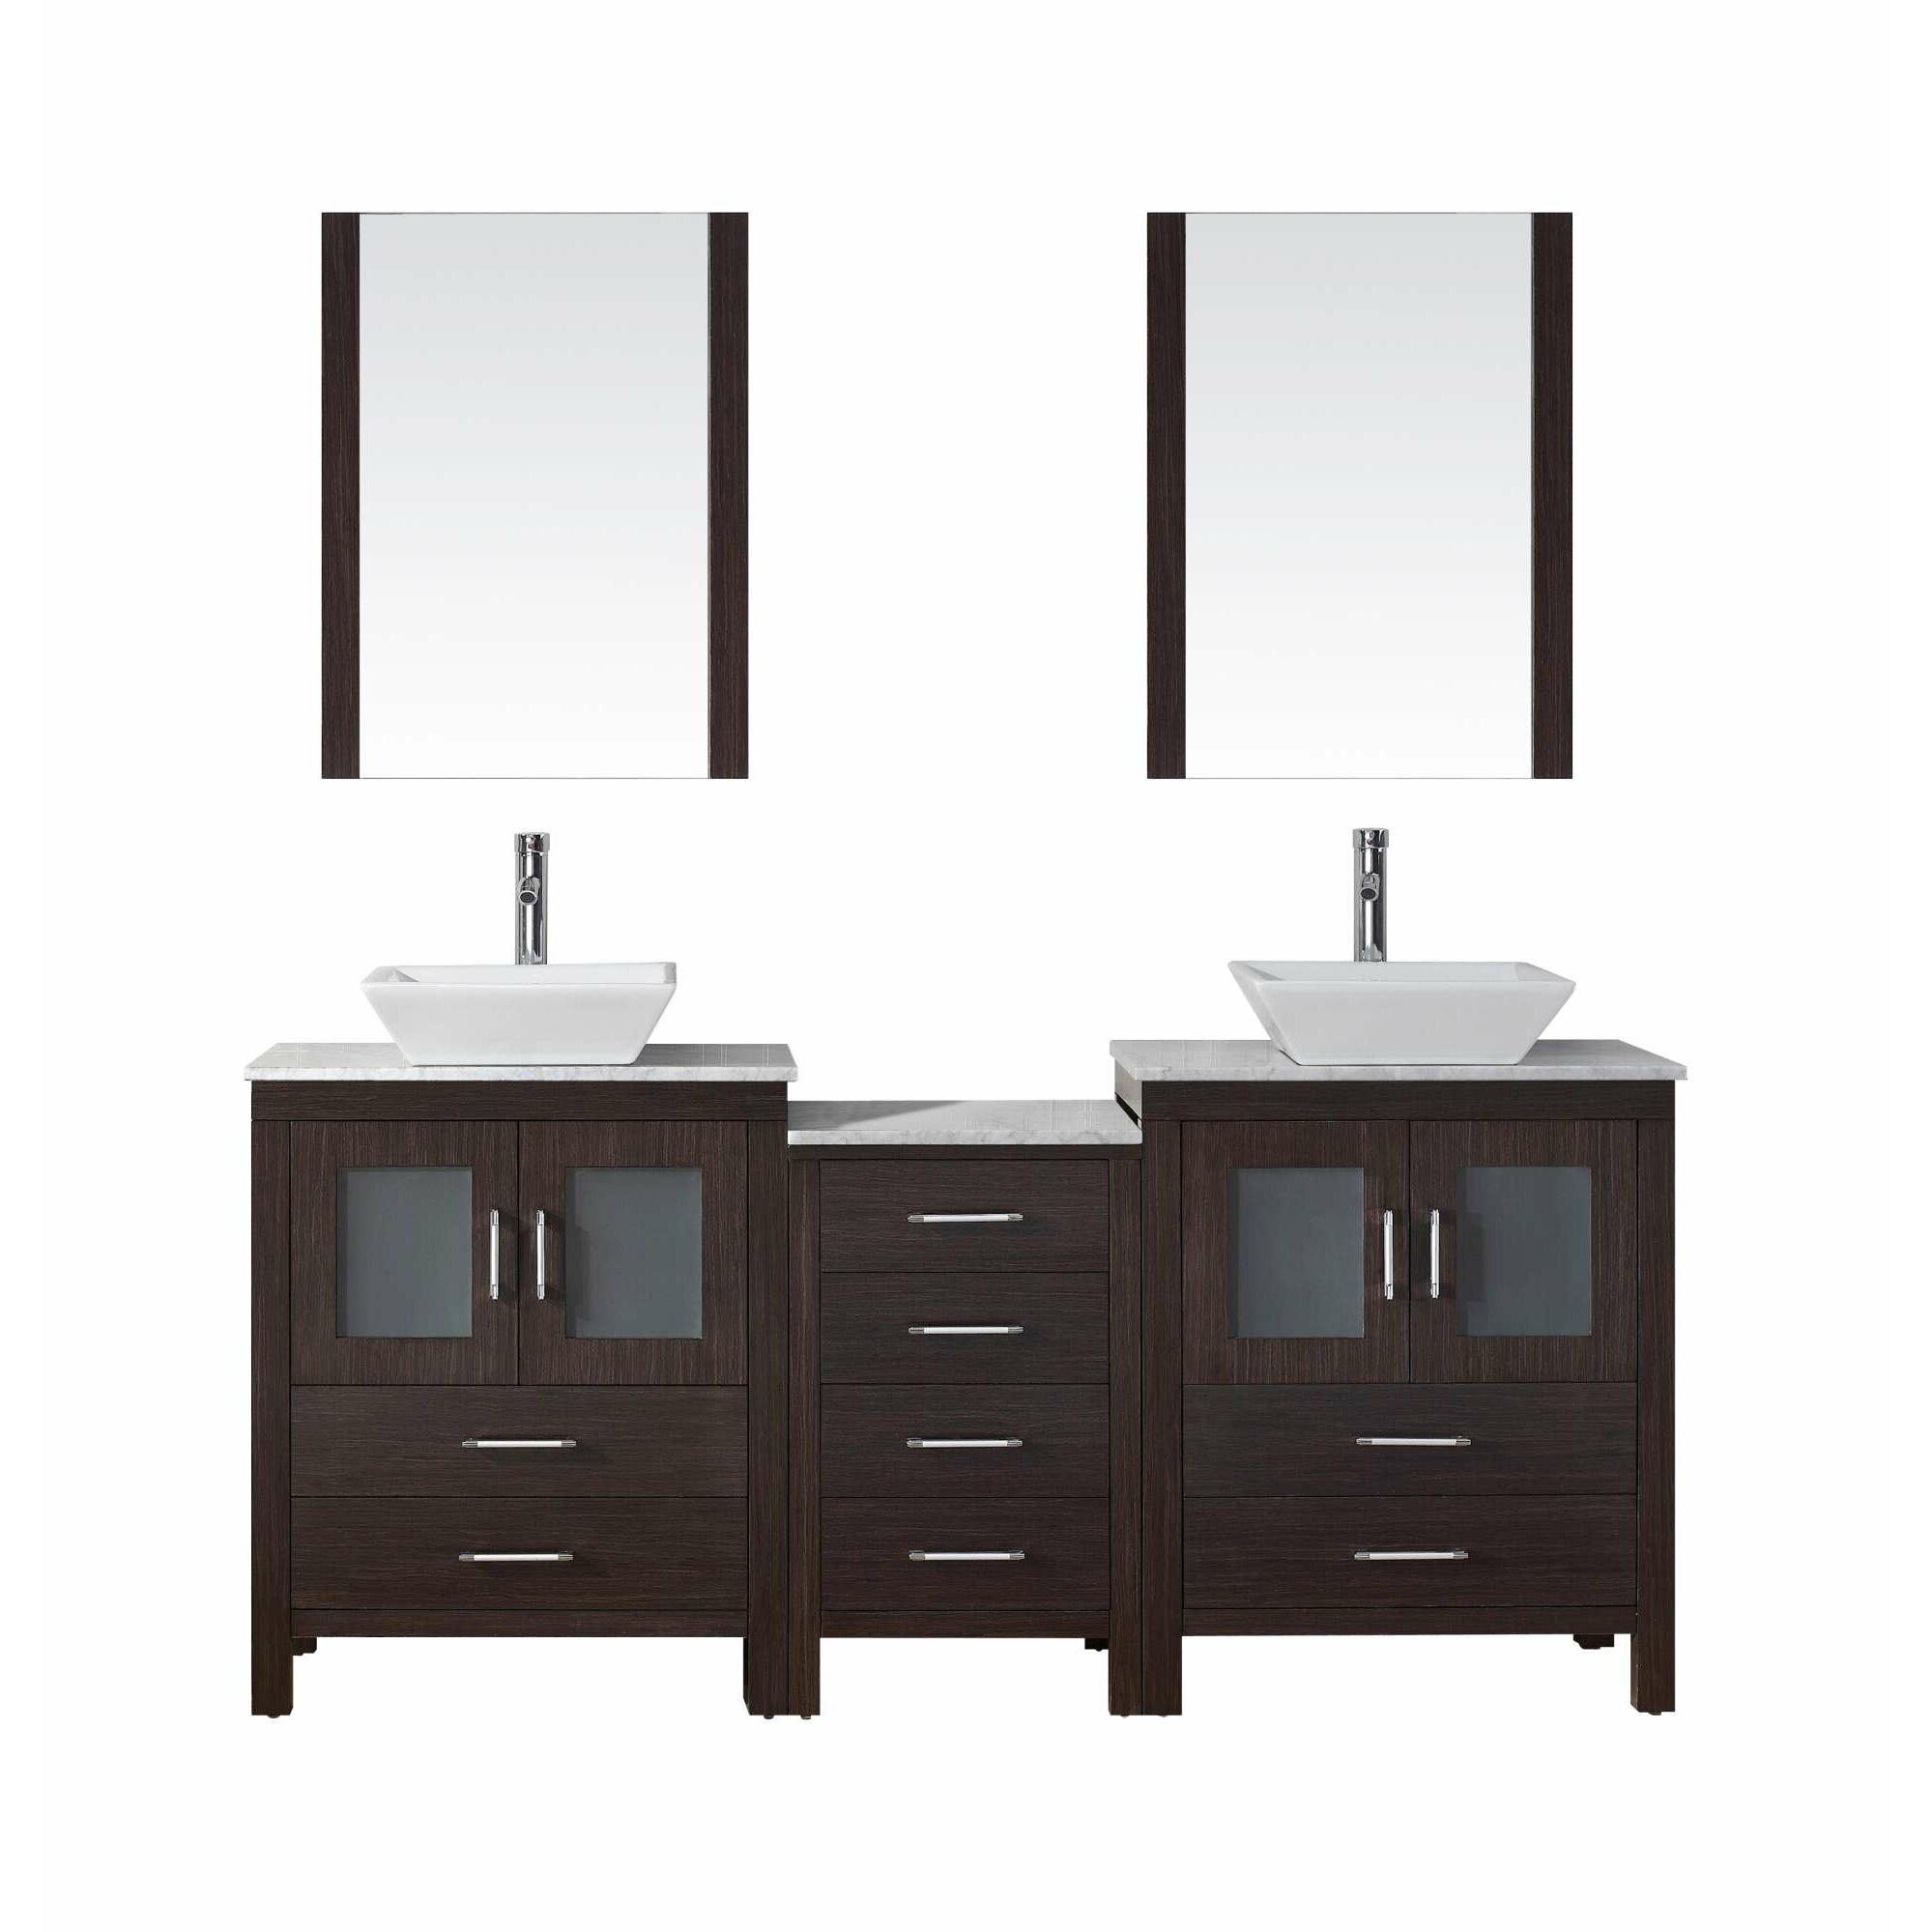 Virtu dior 75 double bathroom vanity set with mirror for Mirror vanity